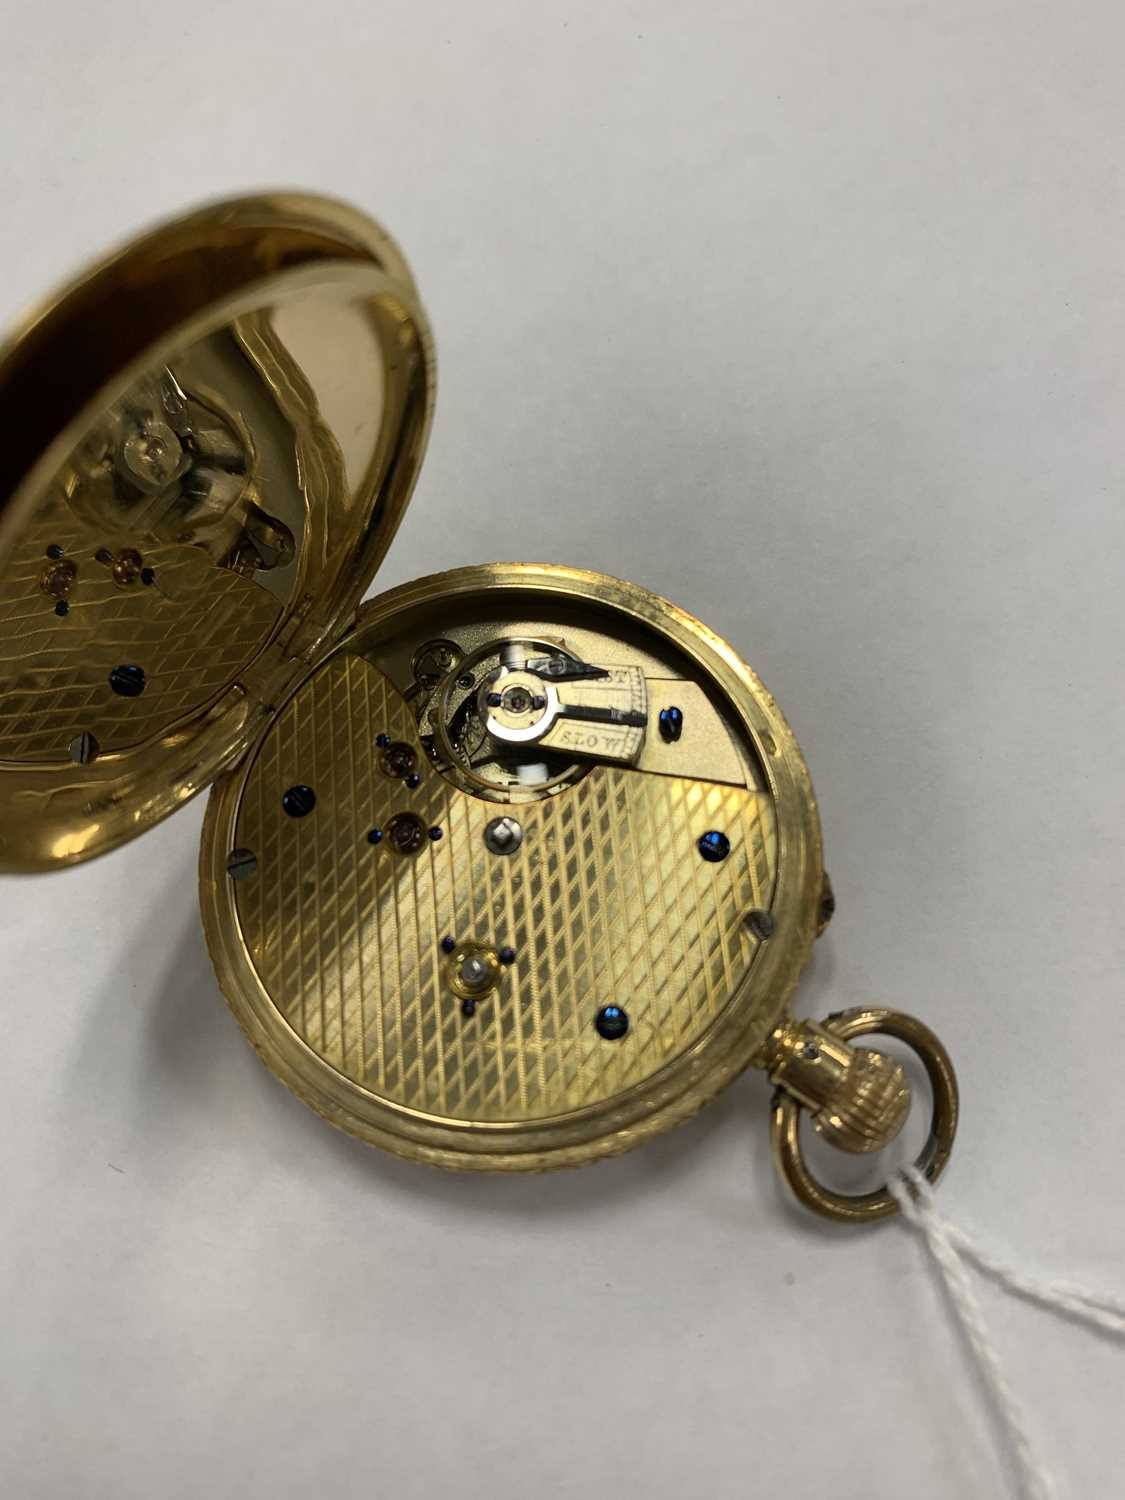 A continental 18k gold open face fob watch - Image 3 of 8